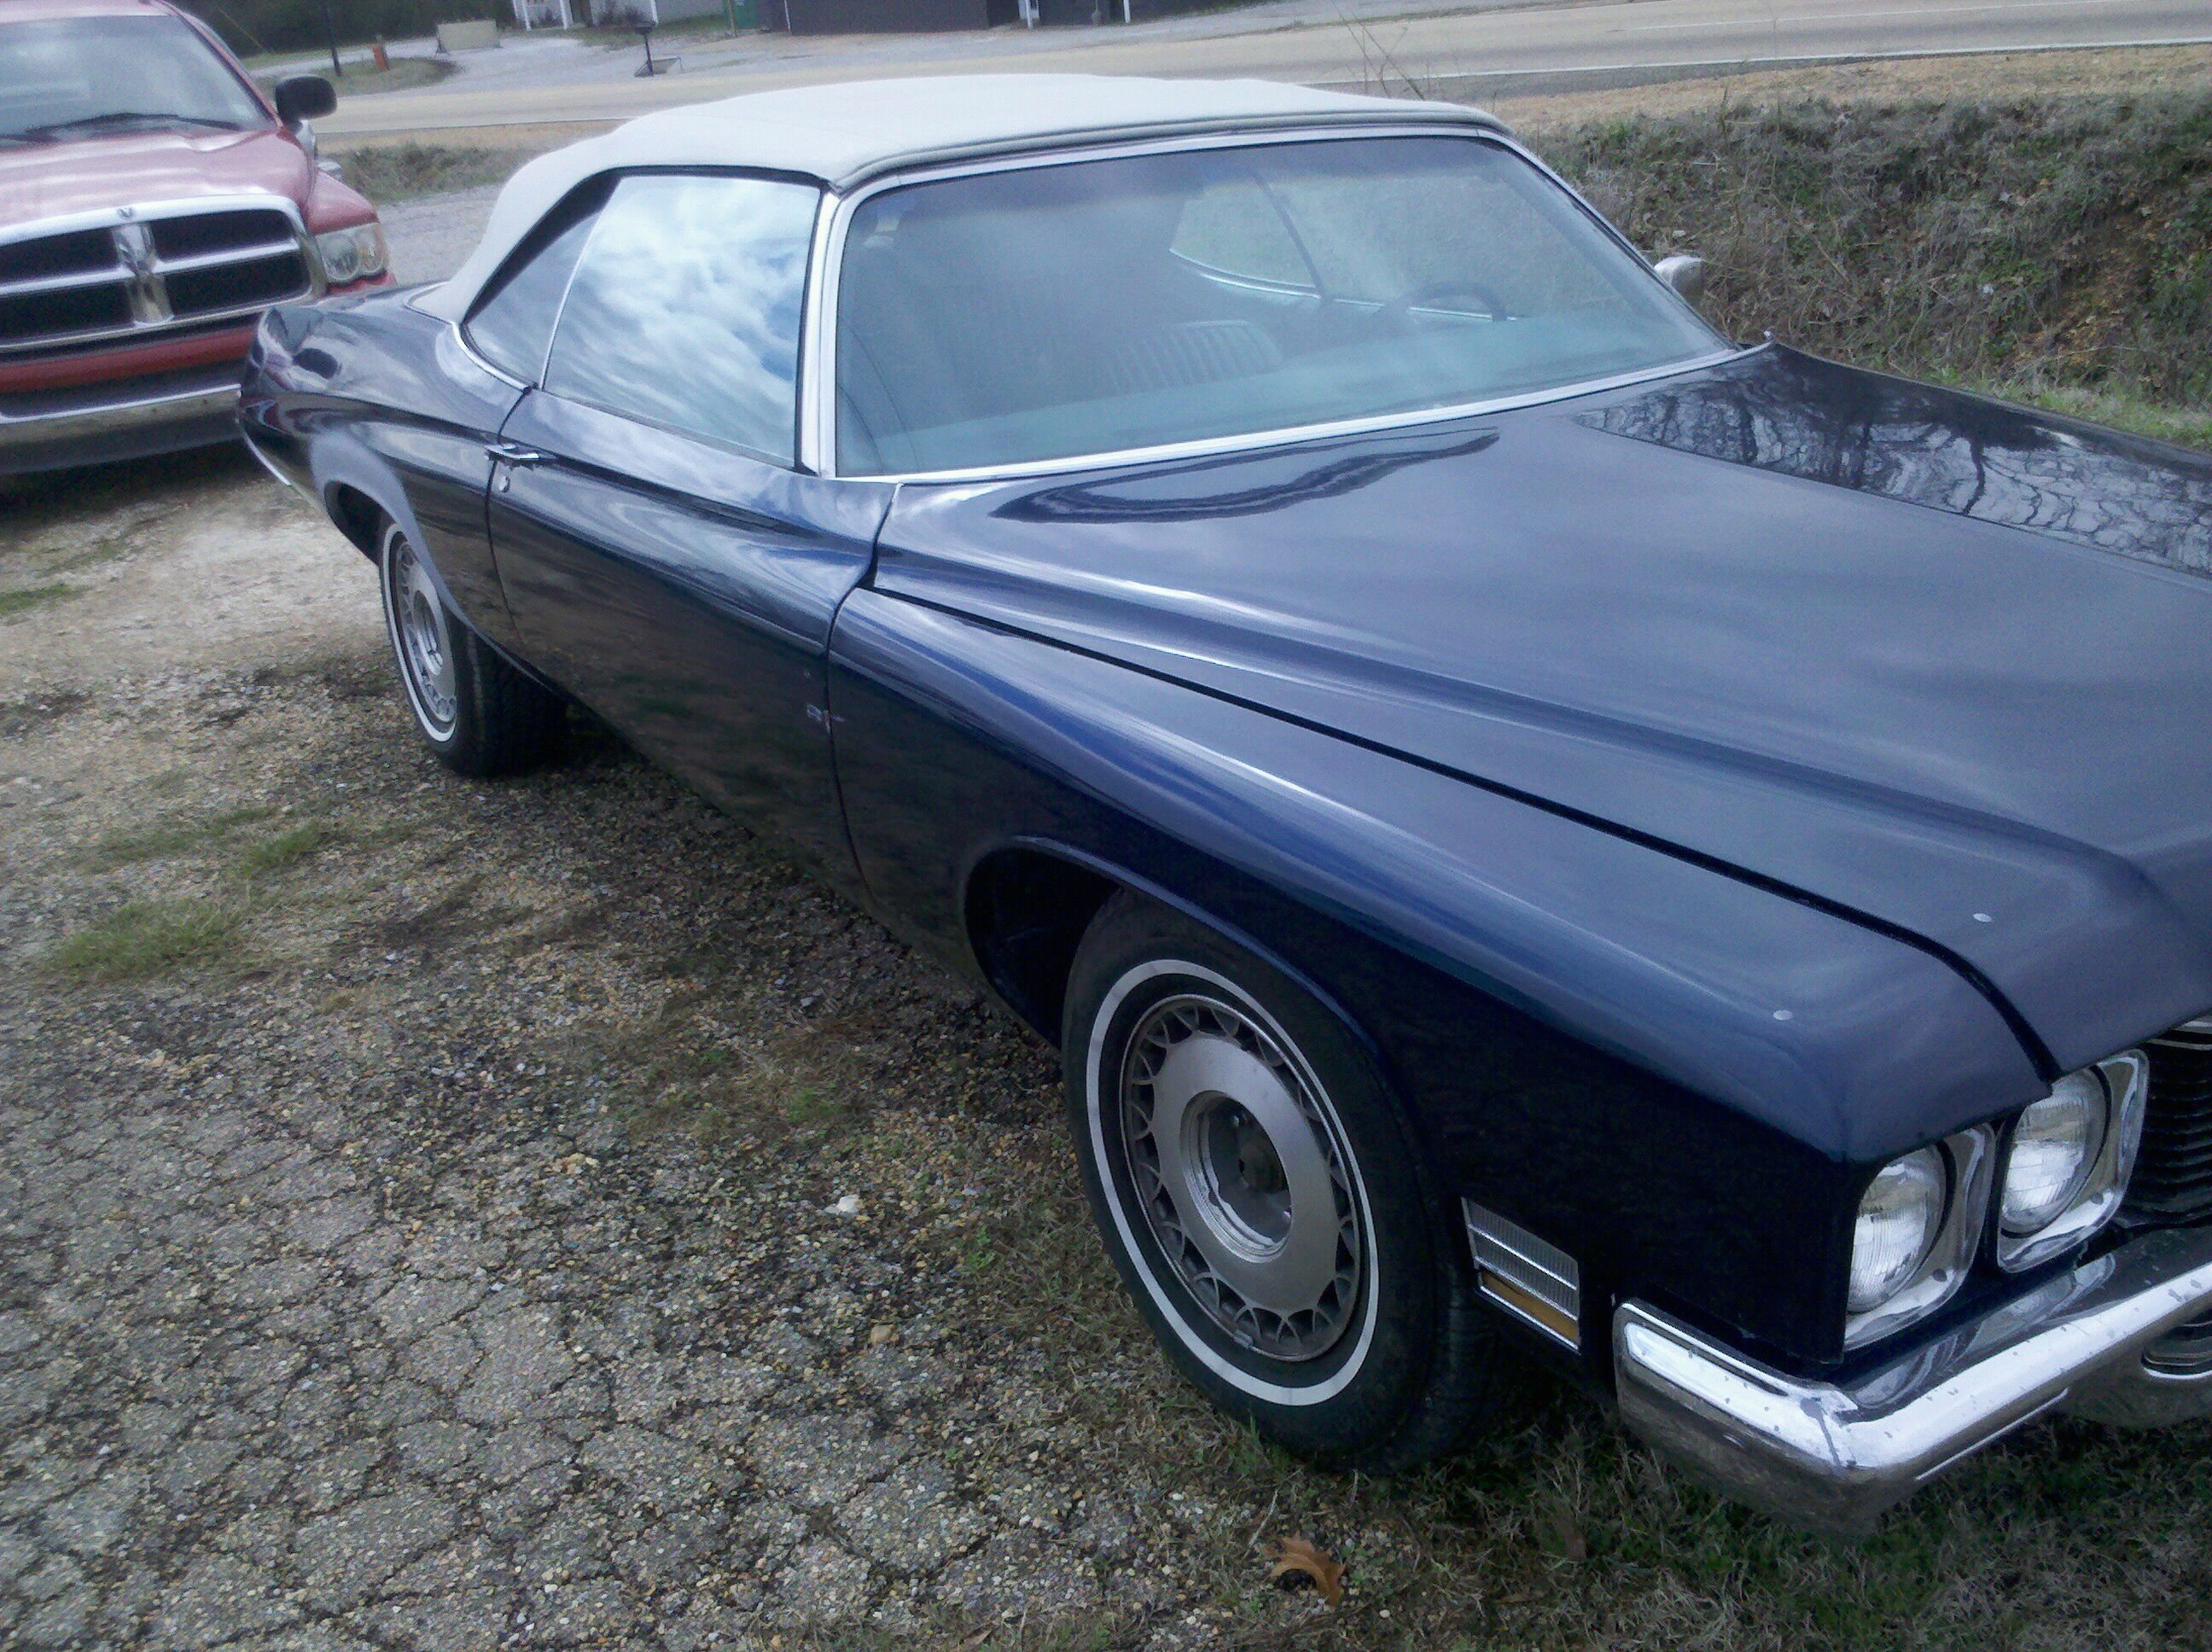 chevy_classic74's 1971 Buick LeSabre